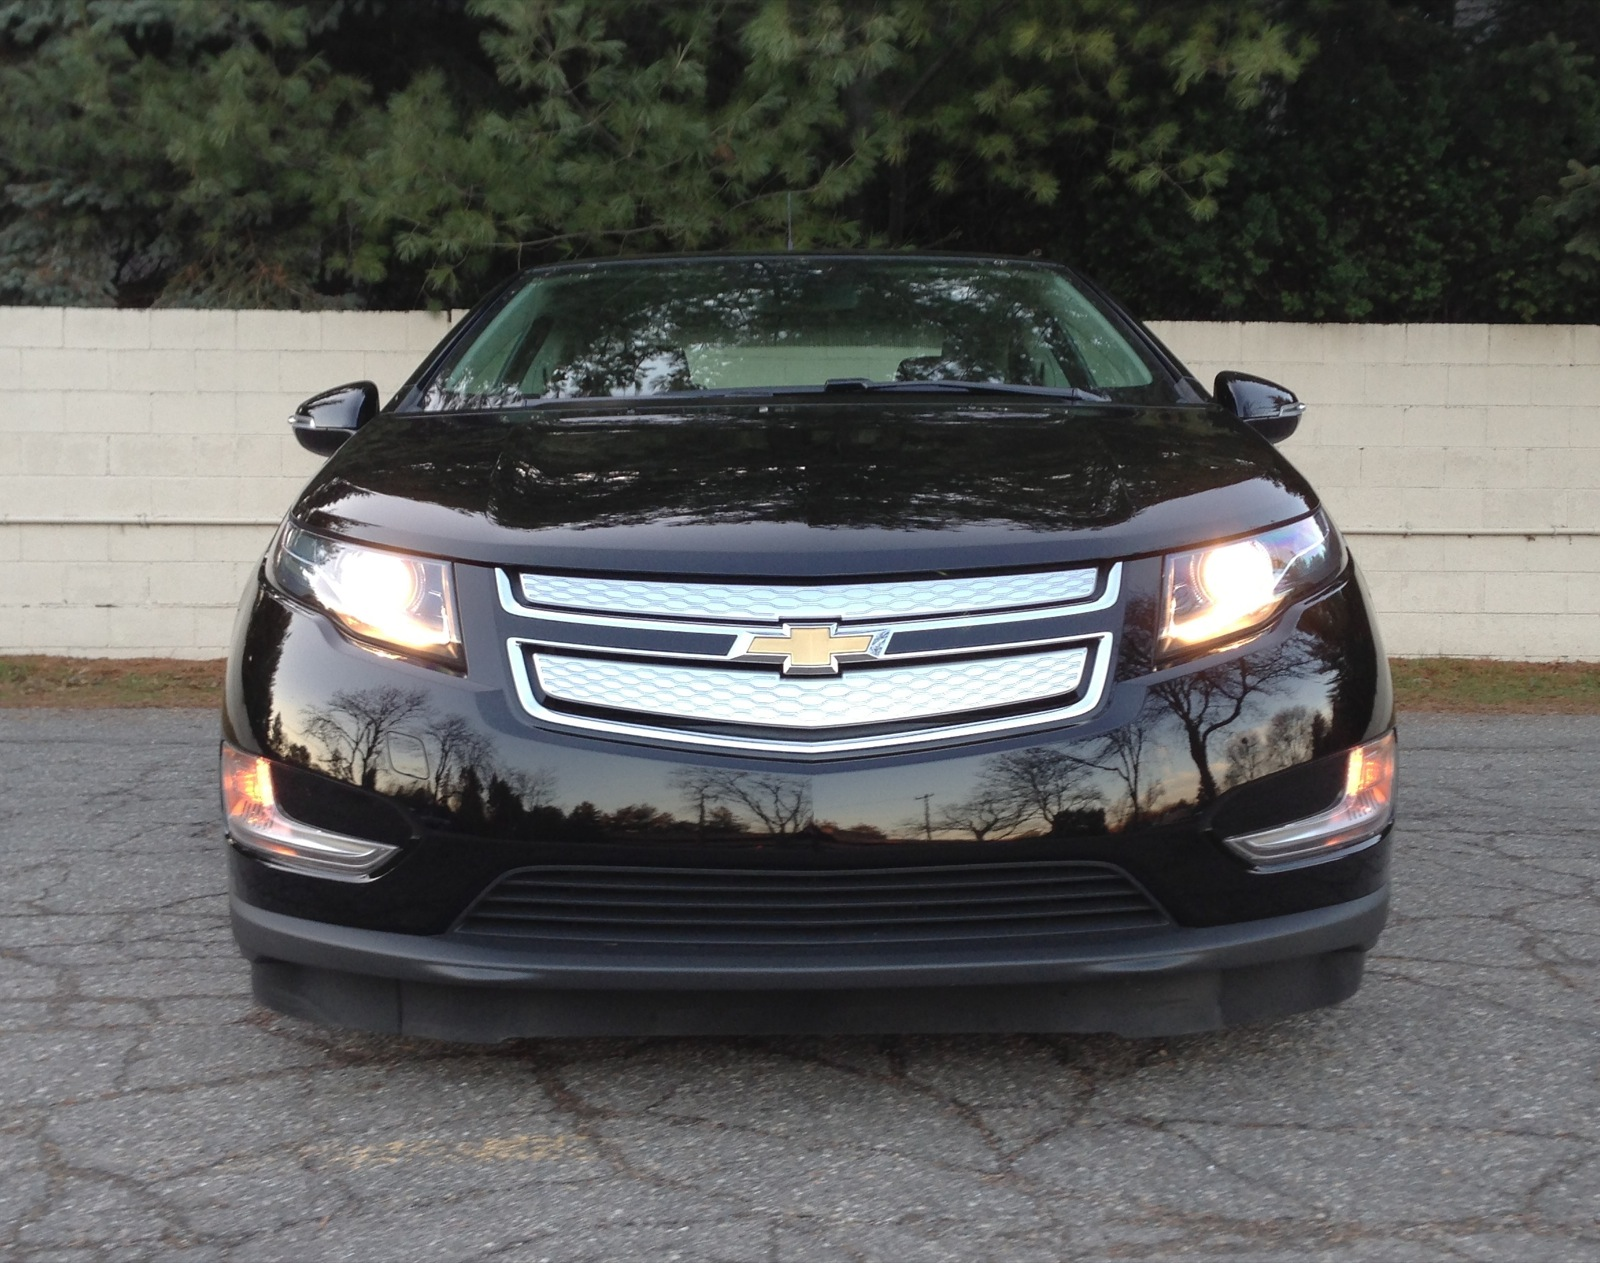 Chevy Volt S Next Range Extender New Opel 1 0 Liter Three